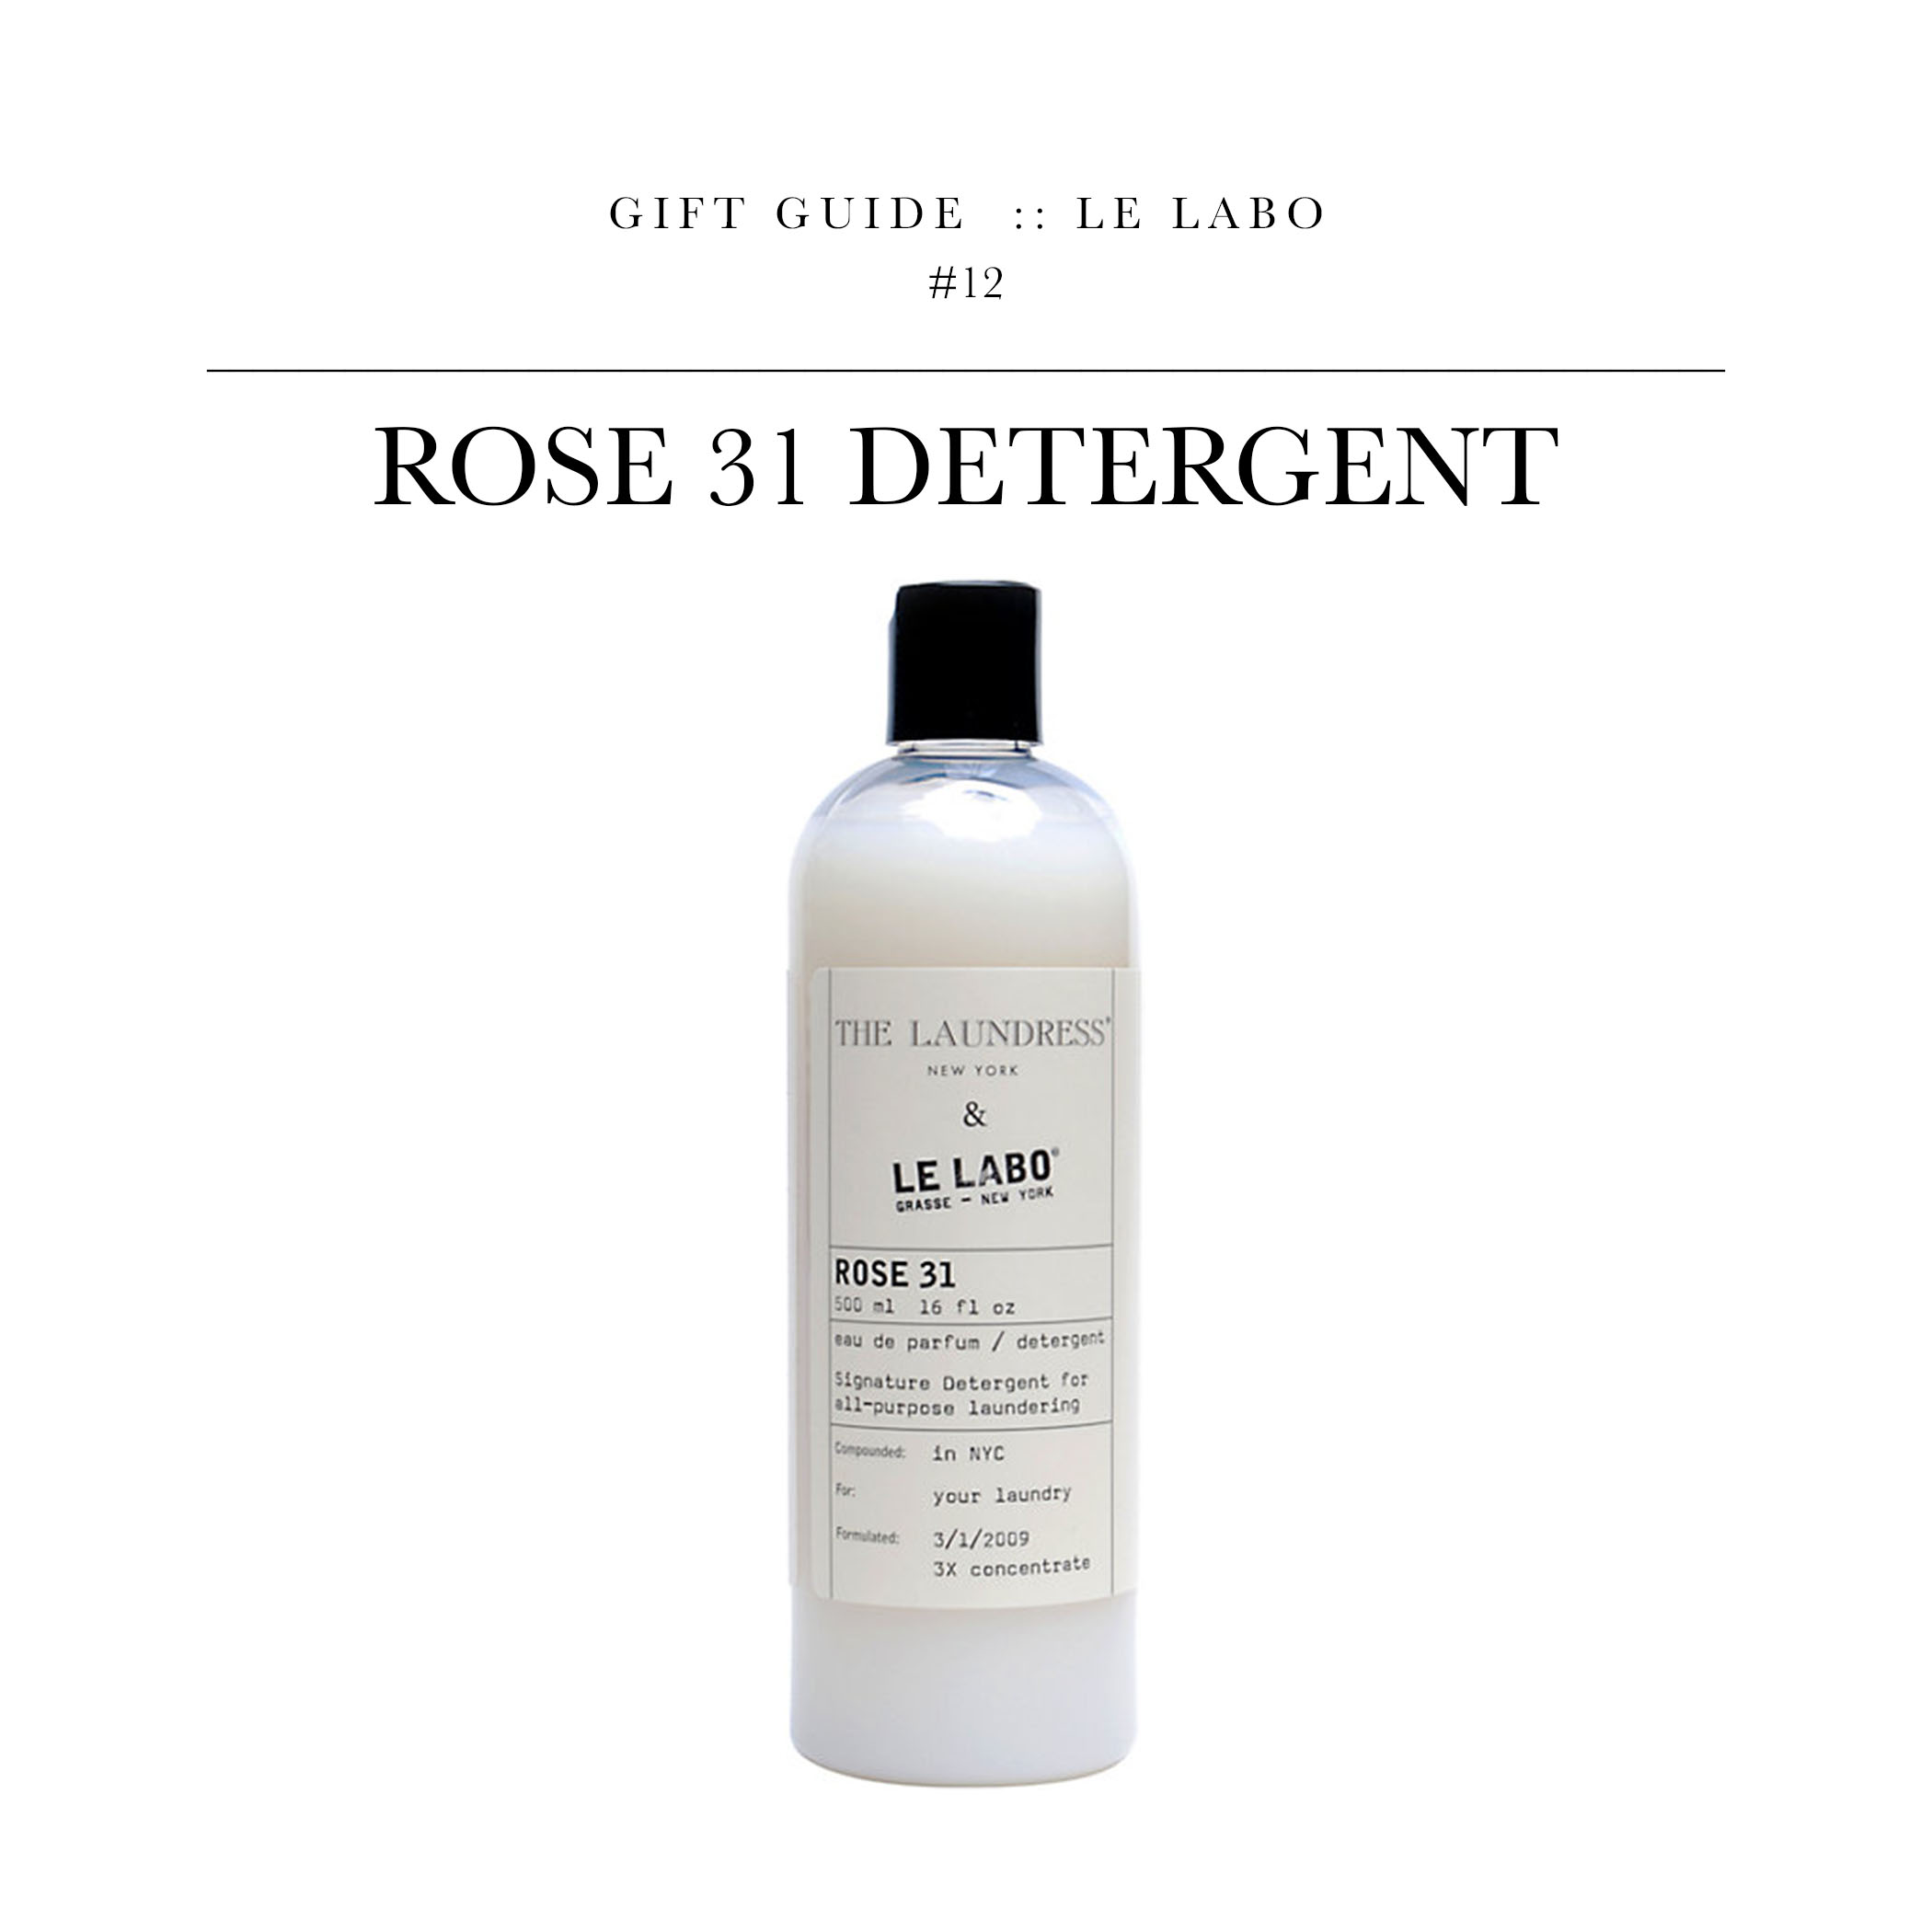 Rose 31 Detergent  via Le Labo // Le Labo makes gorgeous fragrances and did a speciality collaboration with The Laundress.